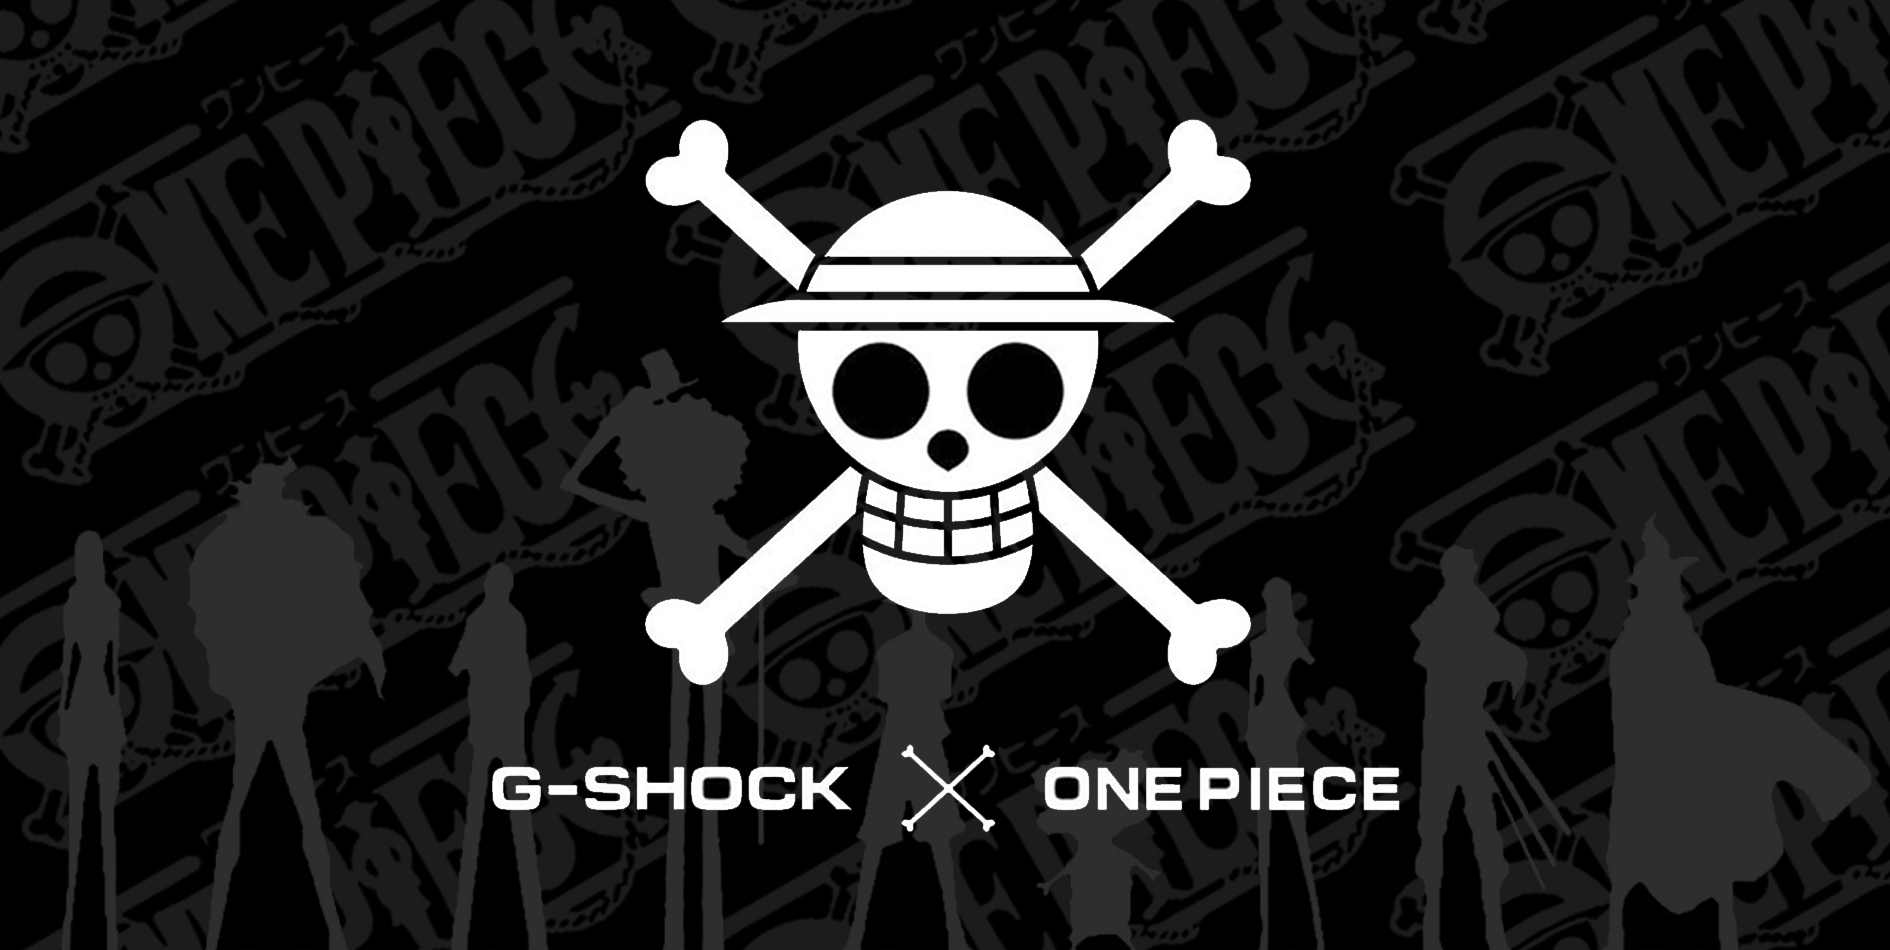 G-SHOCK Teams Up With One Piece For A Coveted Collab